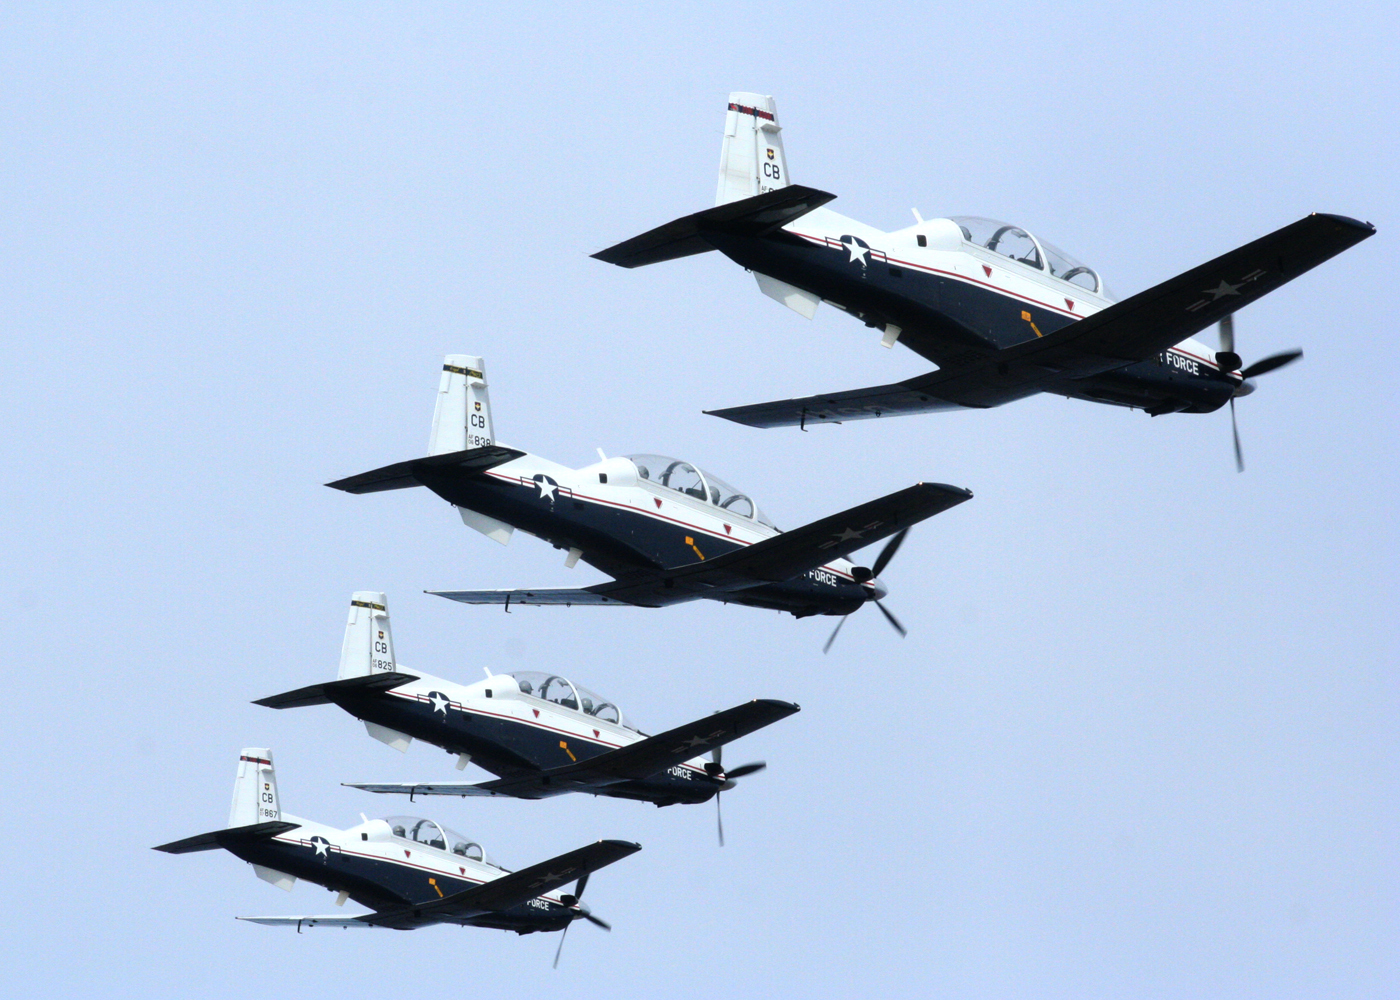 The T-6A Texan II is a single-engine, two-seat trainer teaching basic flying skills.